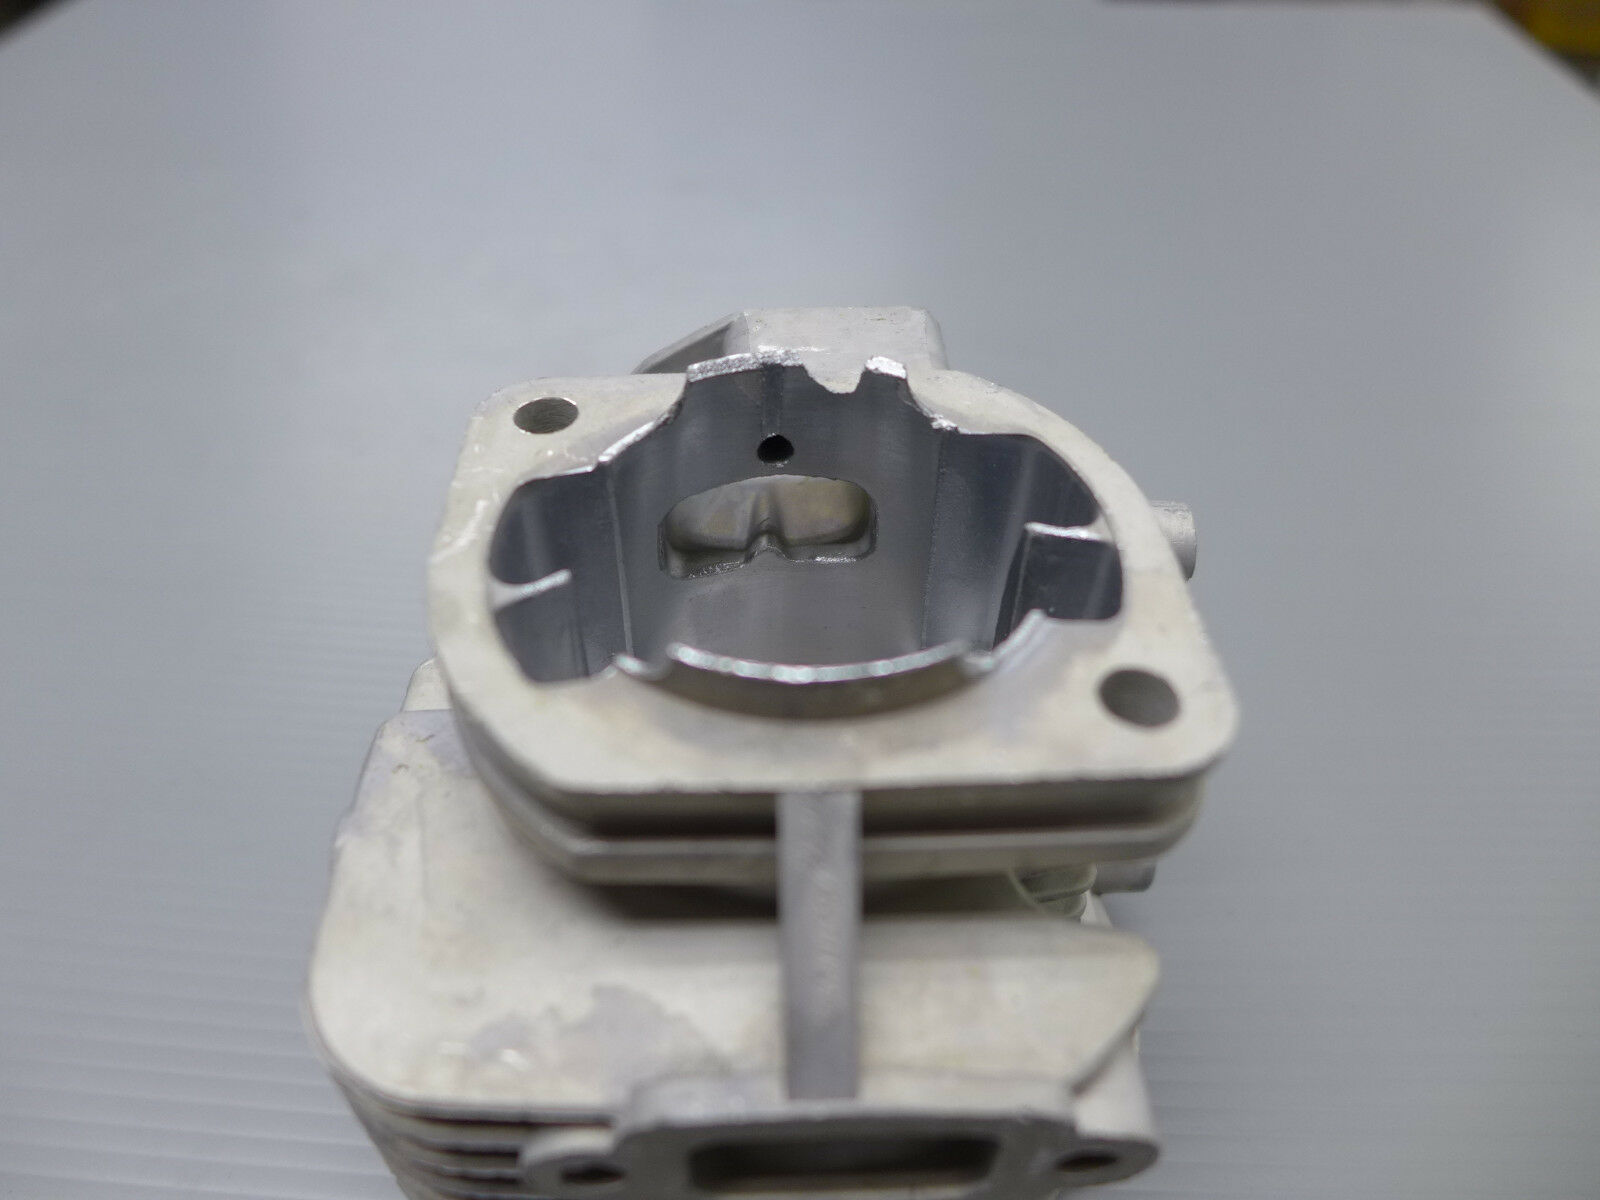 AS IS Condition Condition Condition - Air Cooled 2-Bolt Cylinder Head Gas for CY Car Engine 36mm 88a597